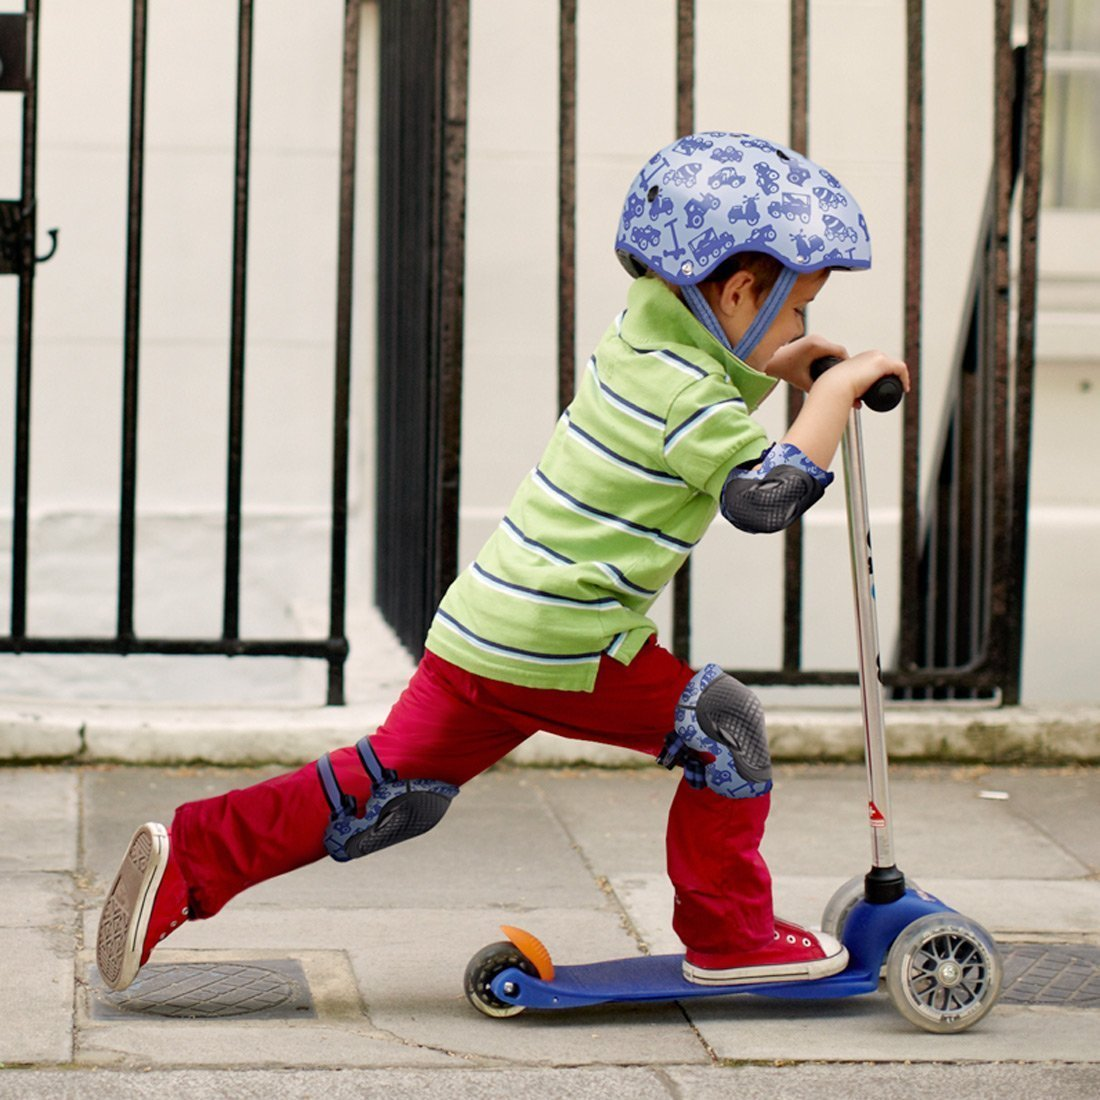 Top 10 Best Kids Scooters - Safe, Fun, Reliable!